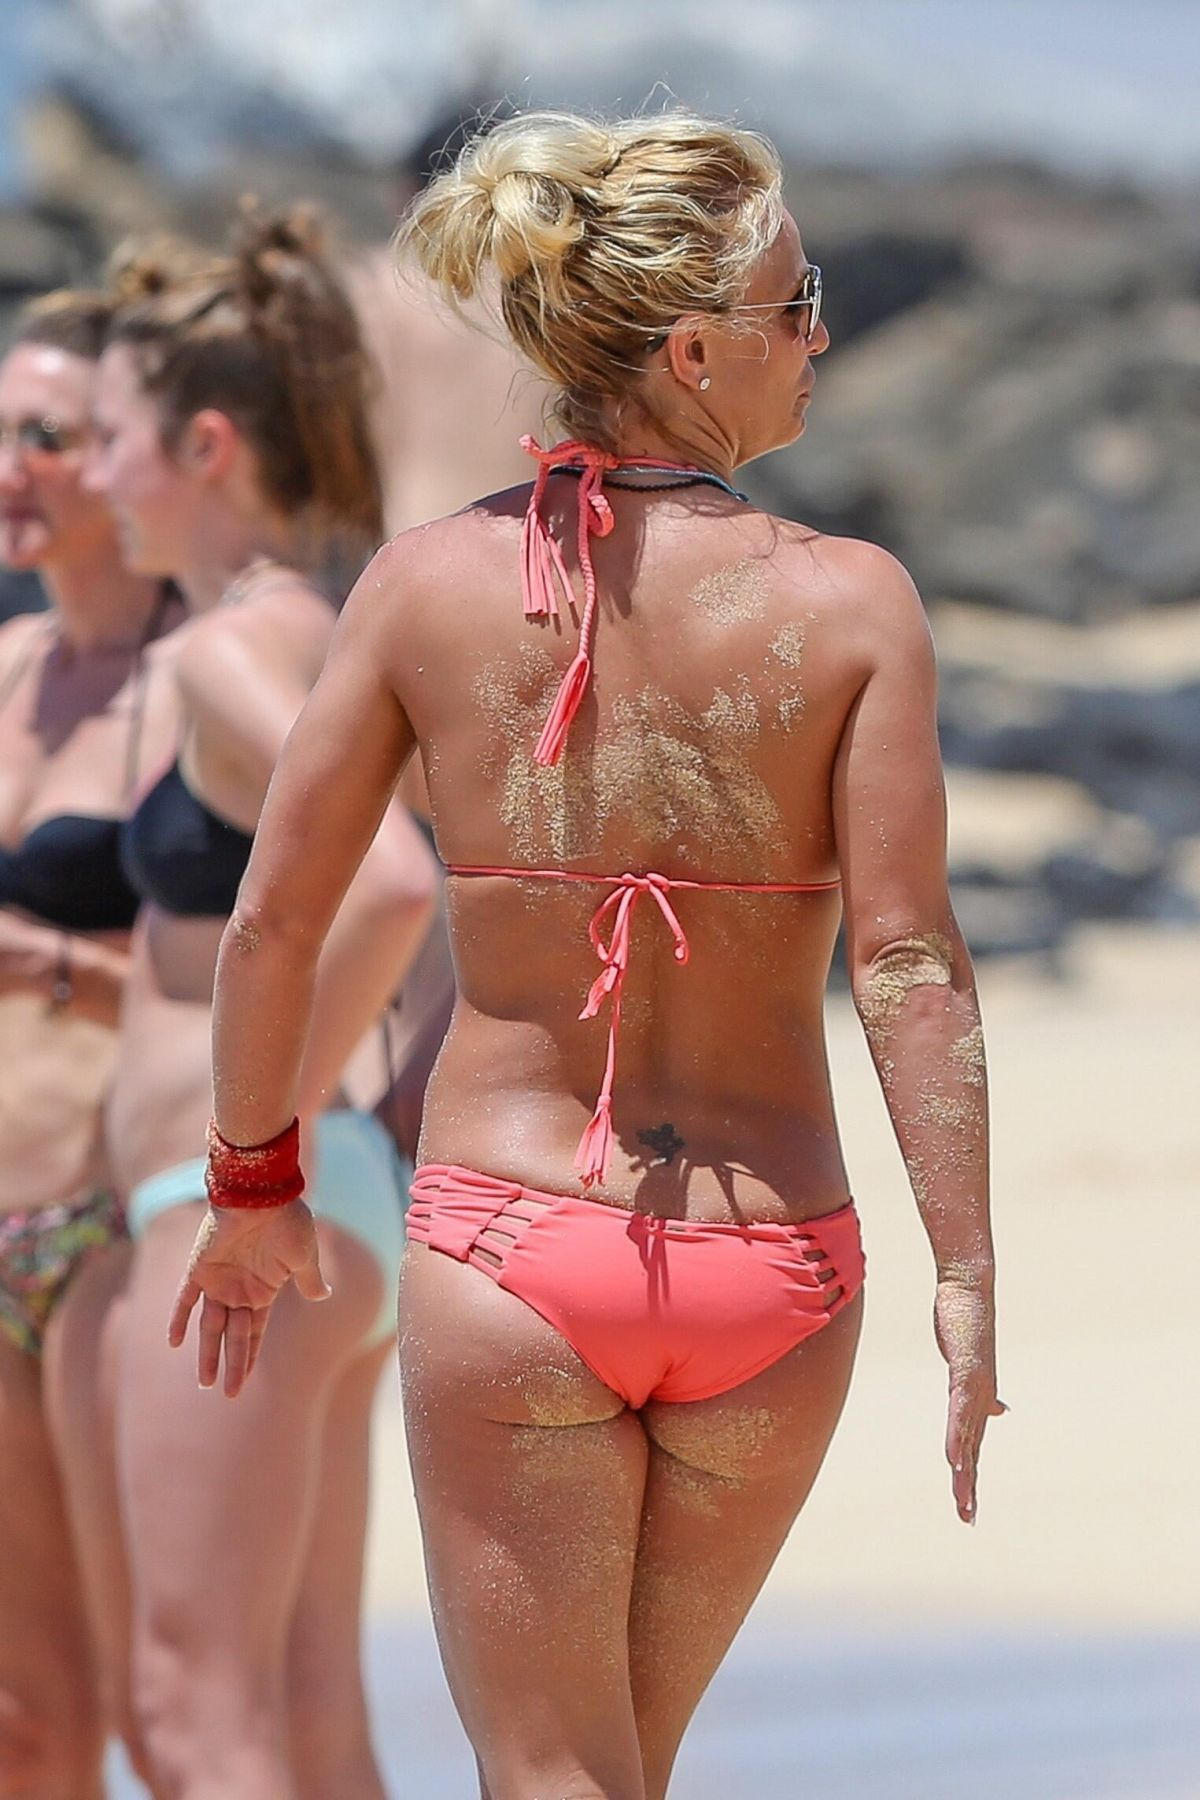 britney-spears-nude-in-beach